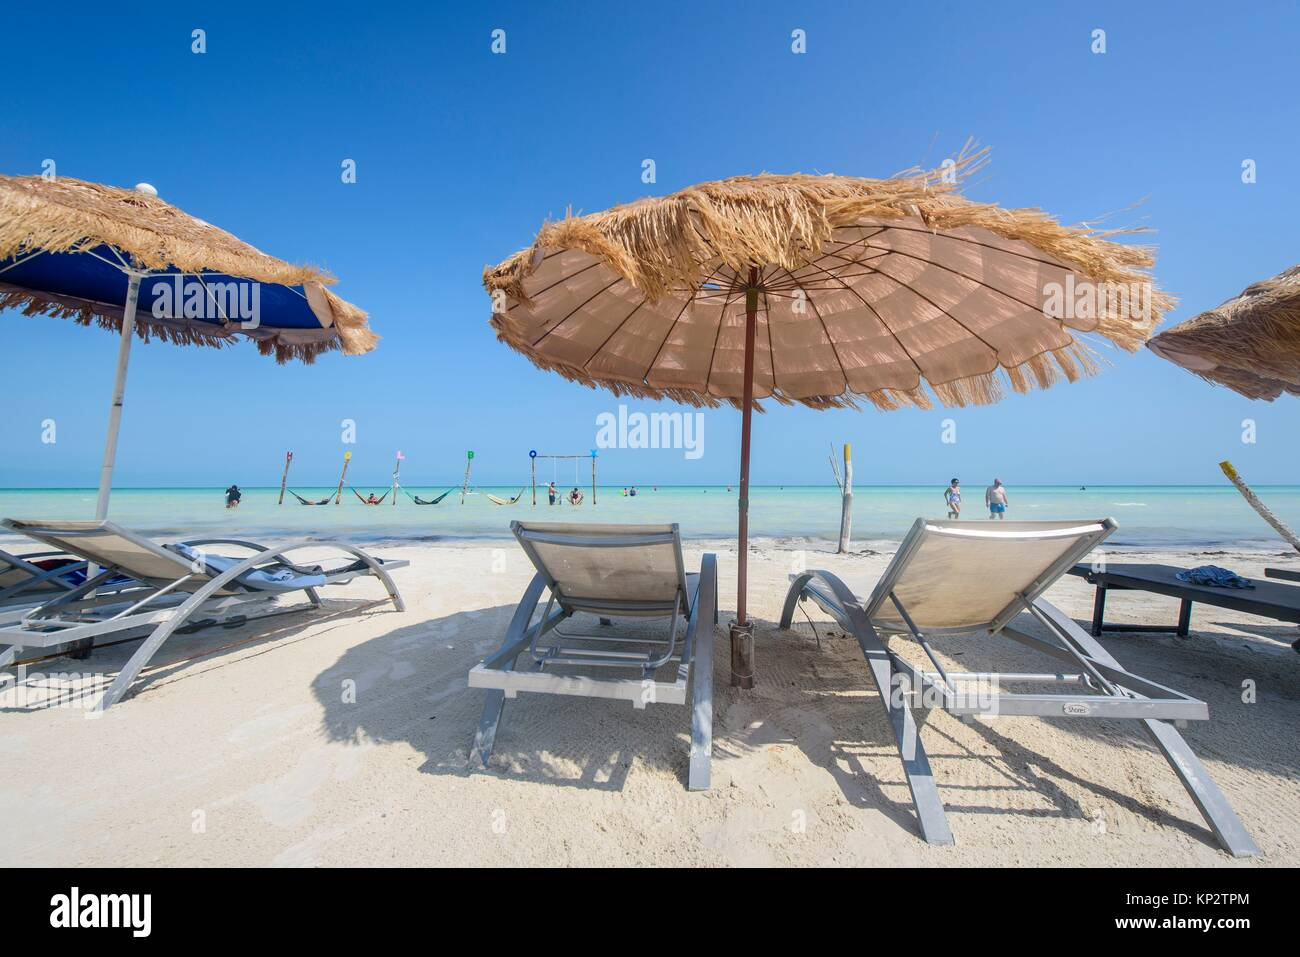 isla holbox mexico stock photos isla holbox mexico stock. Black Bedroom Furniture Sets. Home Design Ideas